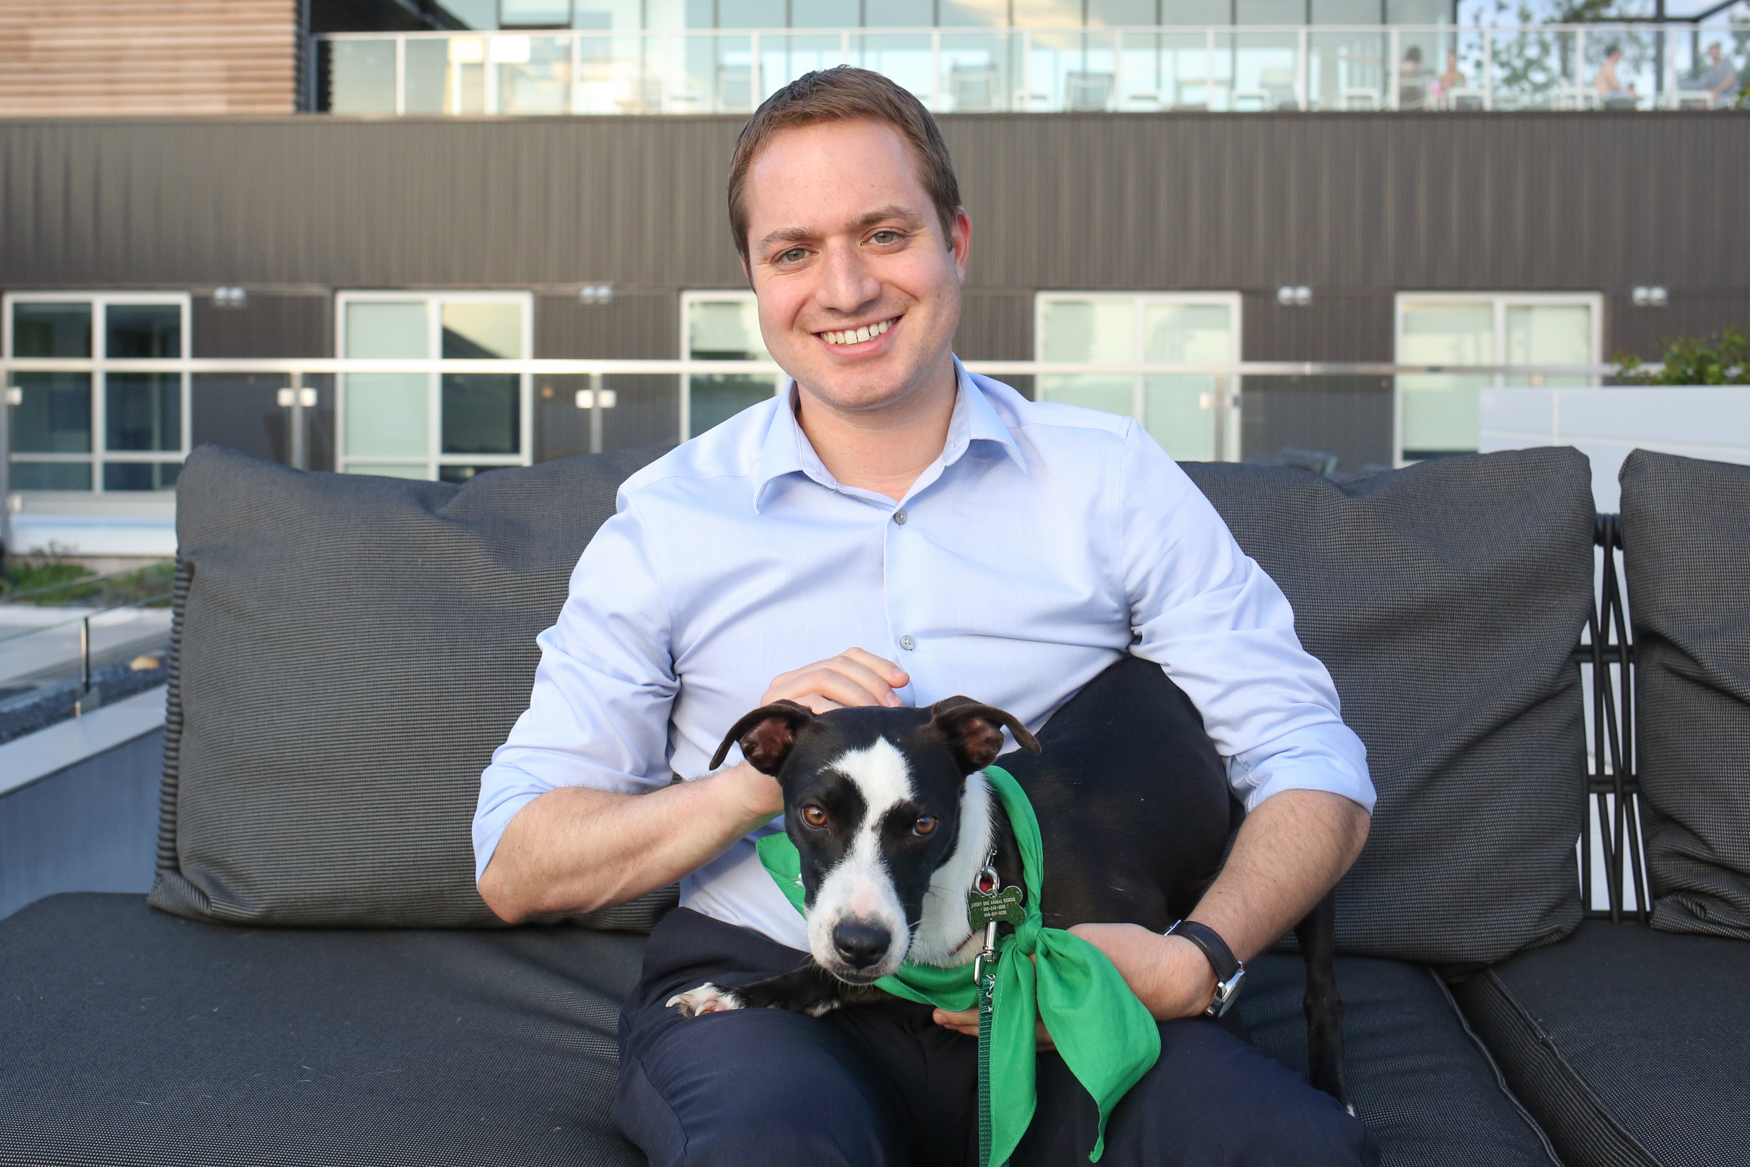 Meet Lua, a Bassett Hound/Terrier mix who is approximately 8-10 months old, and Matt, a 31-year-old human. Photo location: 880 P apartments (Image: Amanda Andrade-Rhoades/ DC Refined)